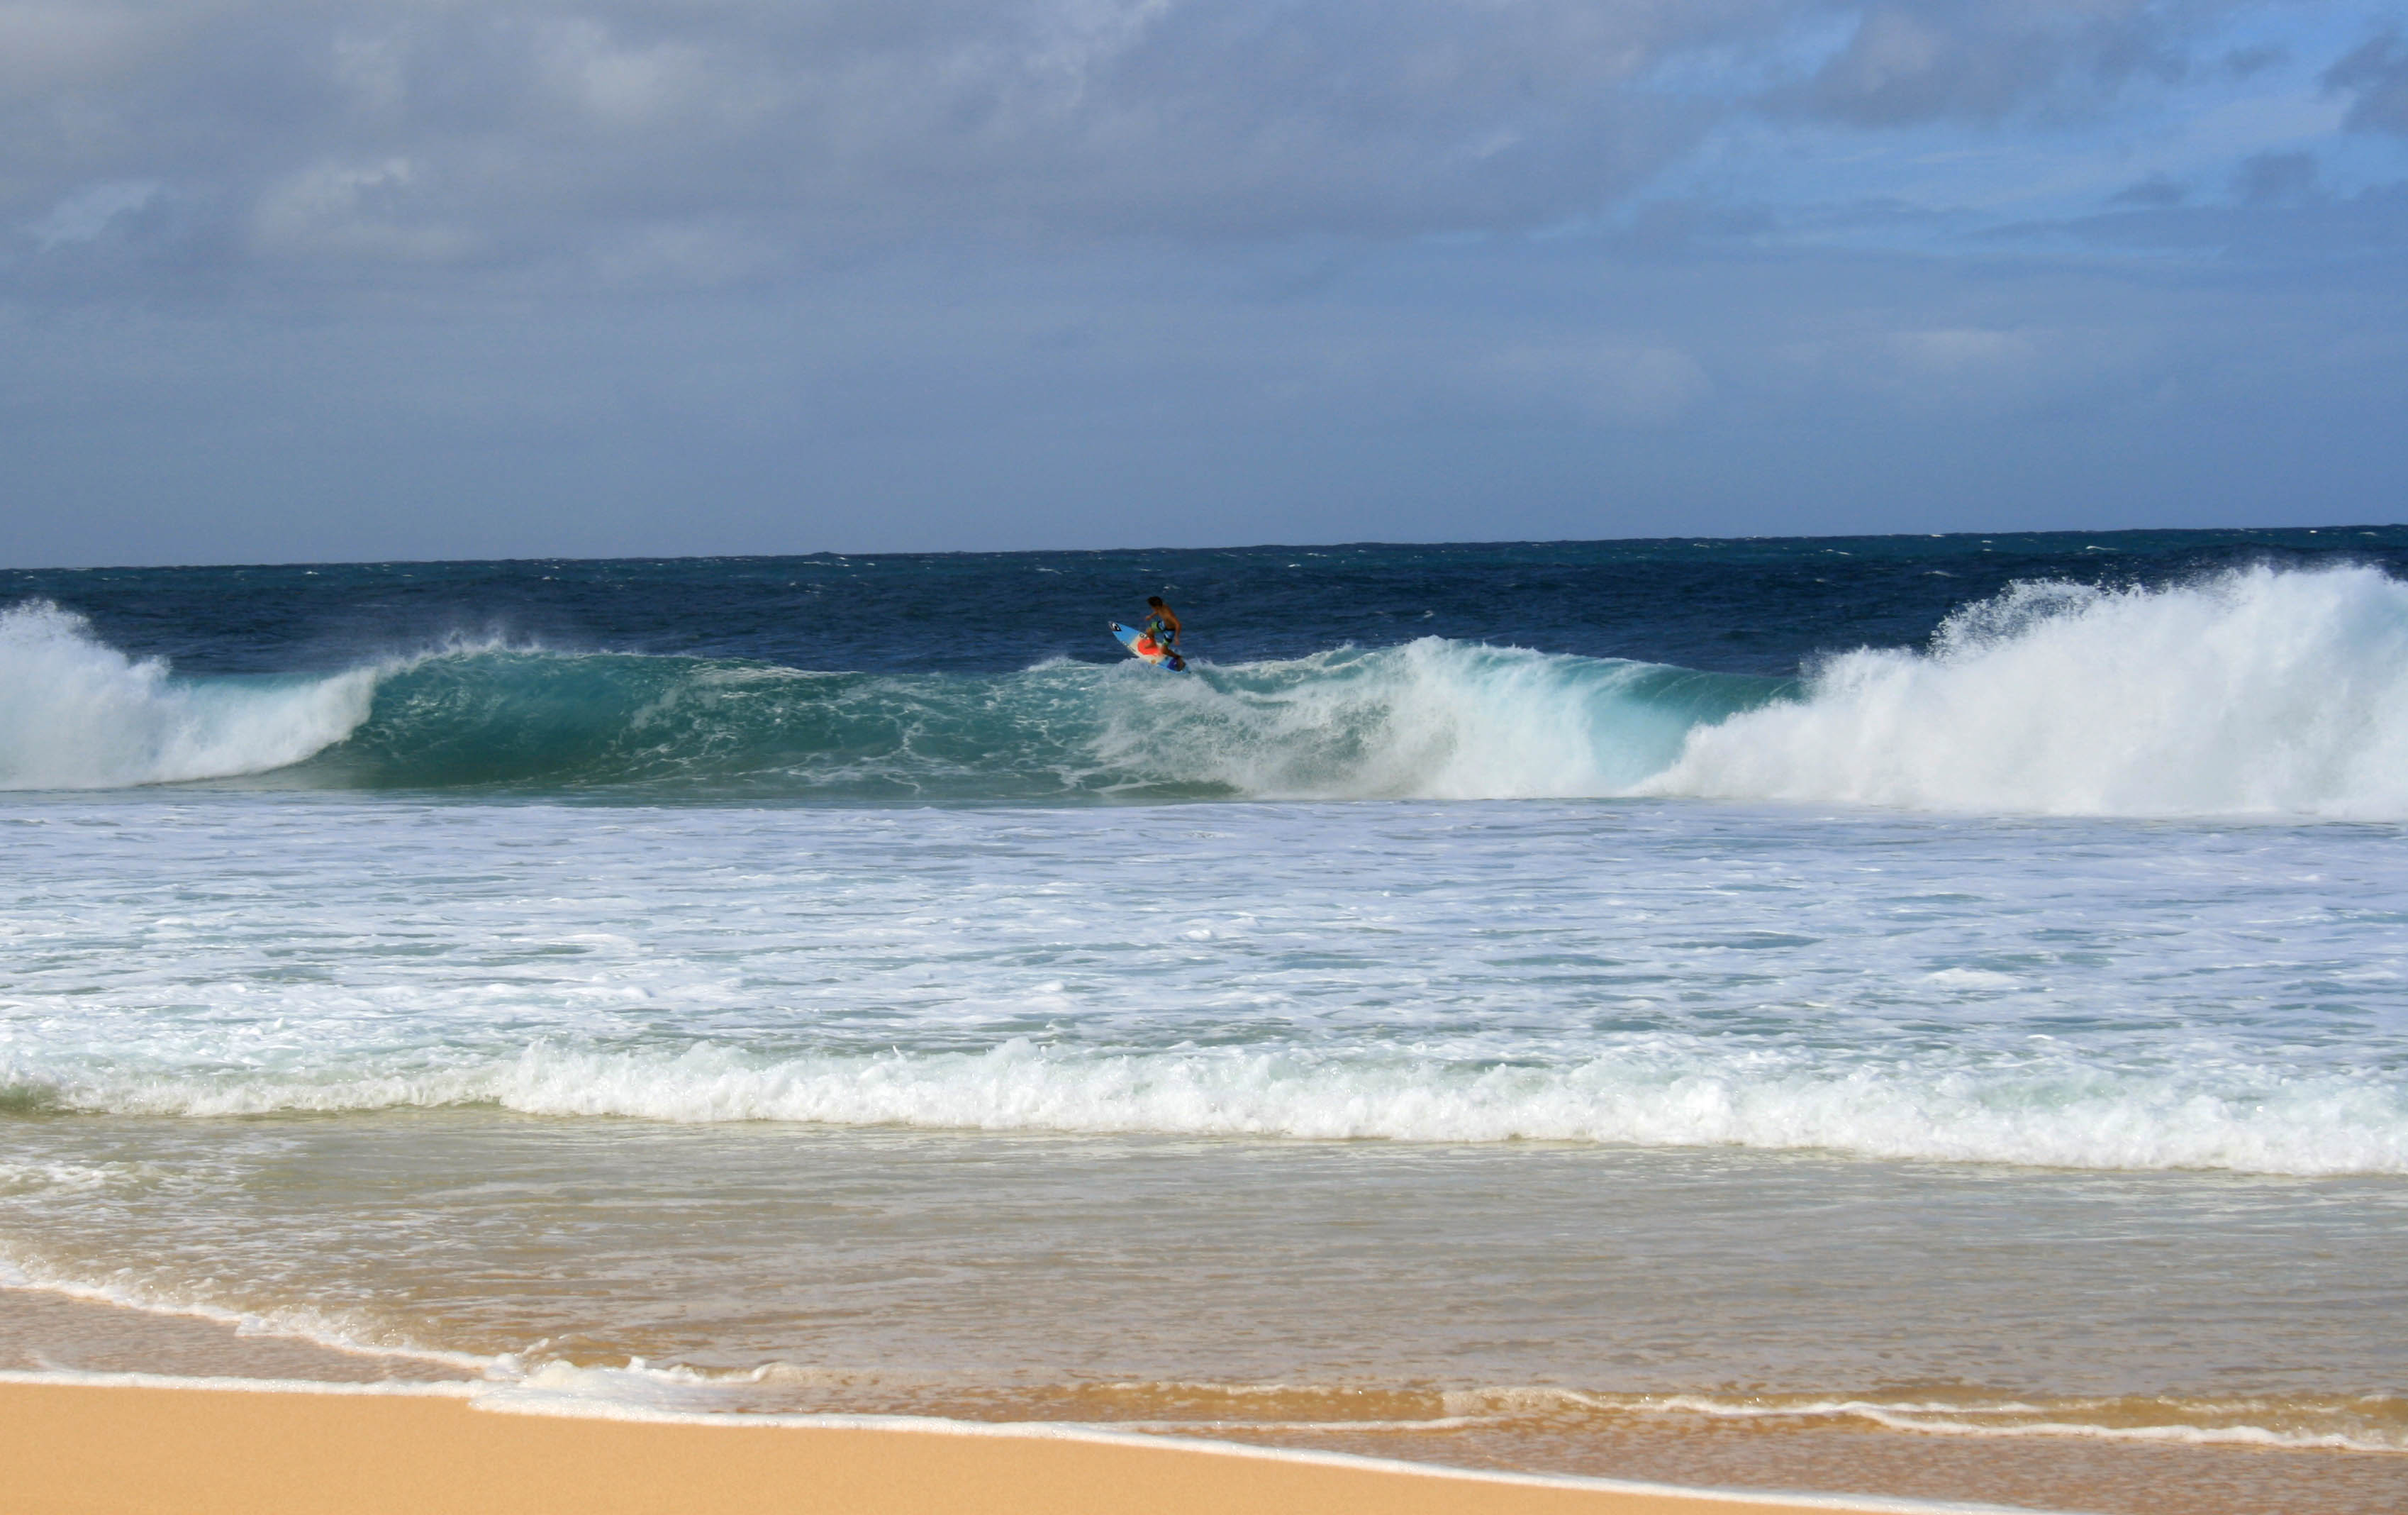 North Shore Surfer